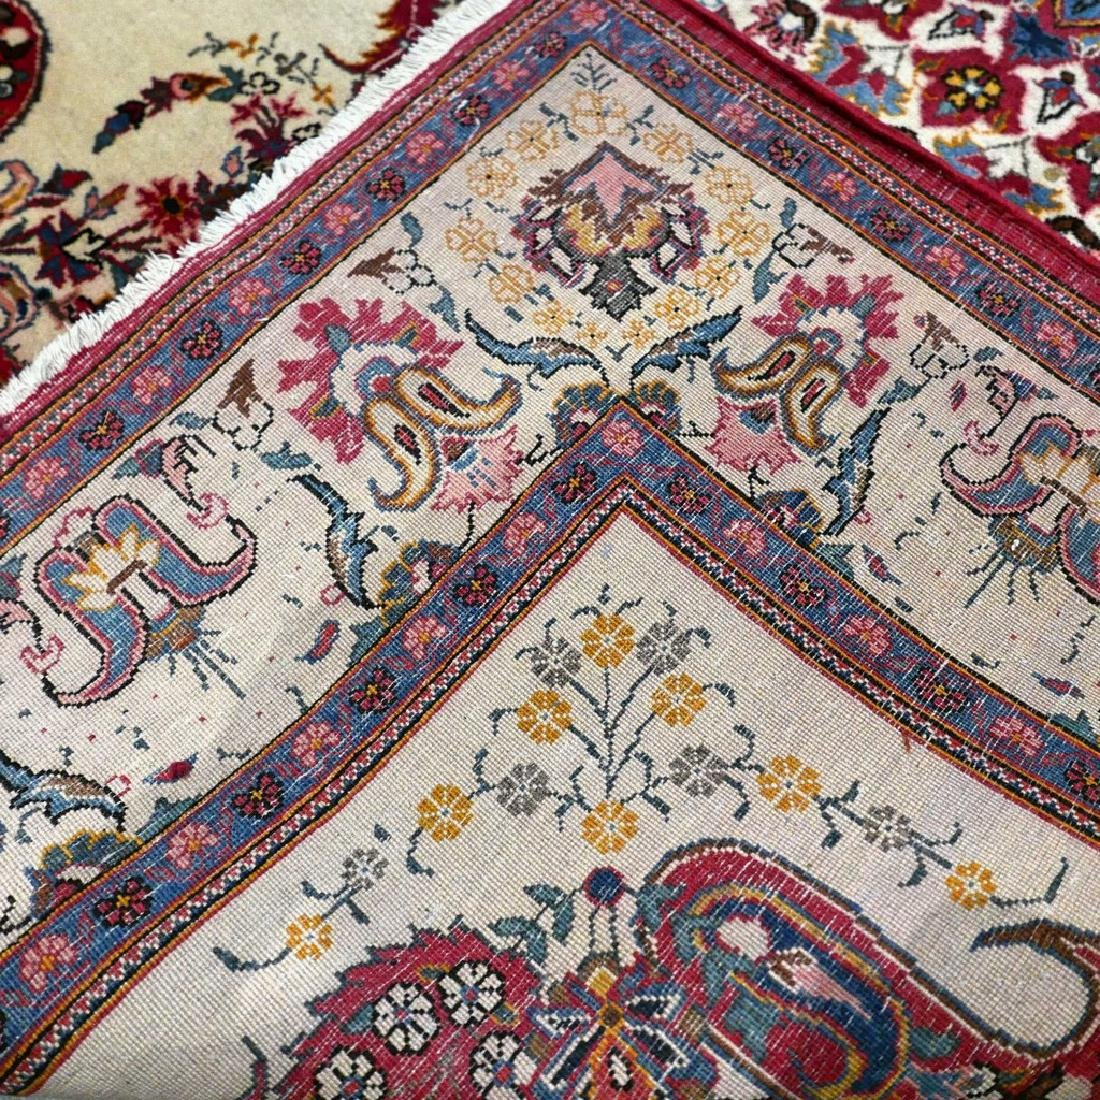 Keshan With Special Design Rug 7x4.4 - 2